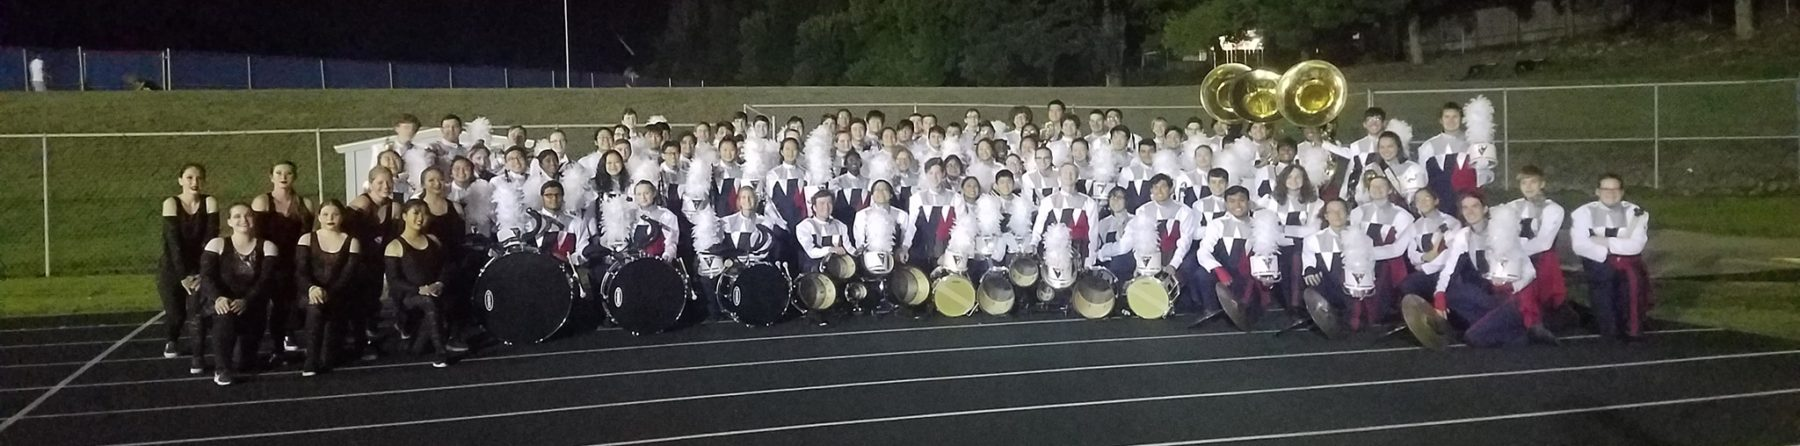 WESTVIEW HIGH SCHOOL BAND & AUXILIARY